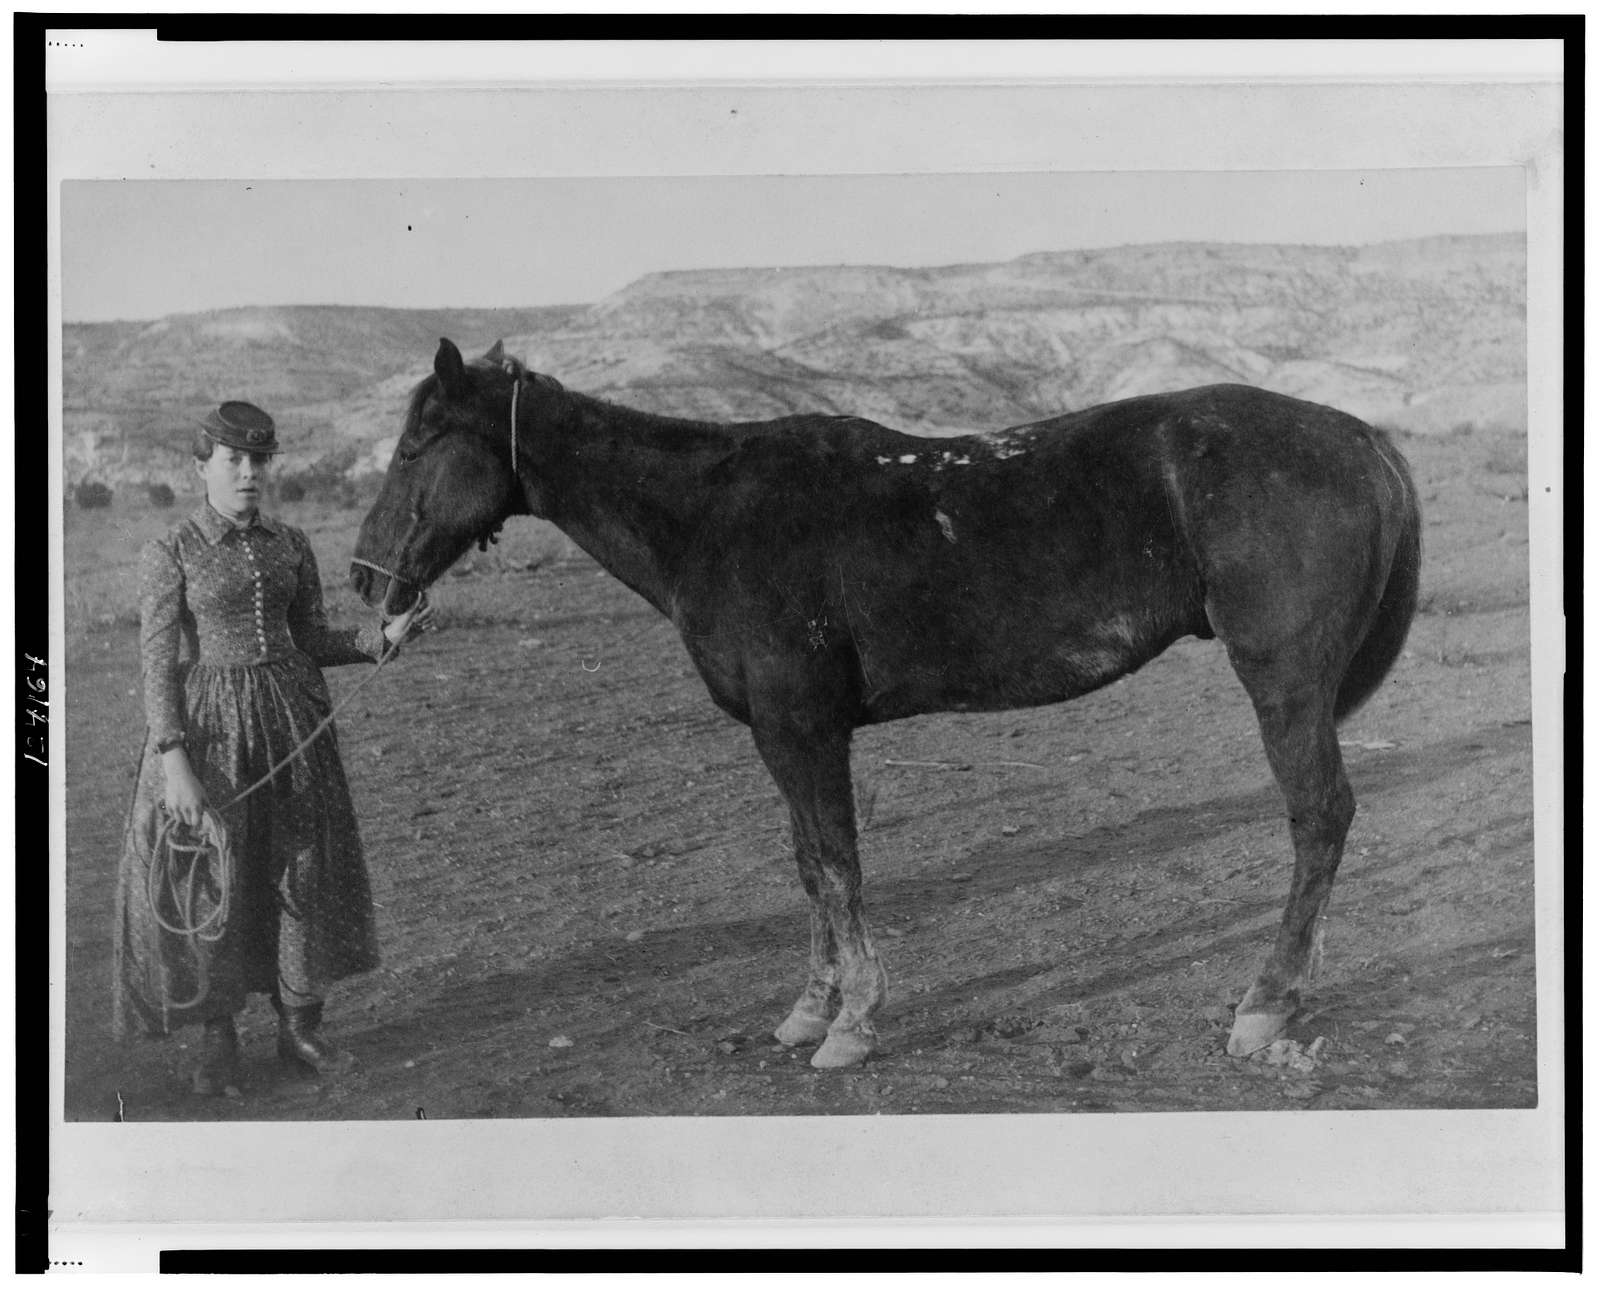 [Emma Baldwin(?), daughter of Captain Theodore Baldwin, full-length portrait, standing with her horse, Mex, facing slightly right, Fort Verde, Arizona]